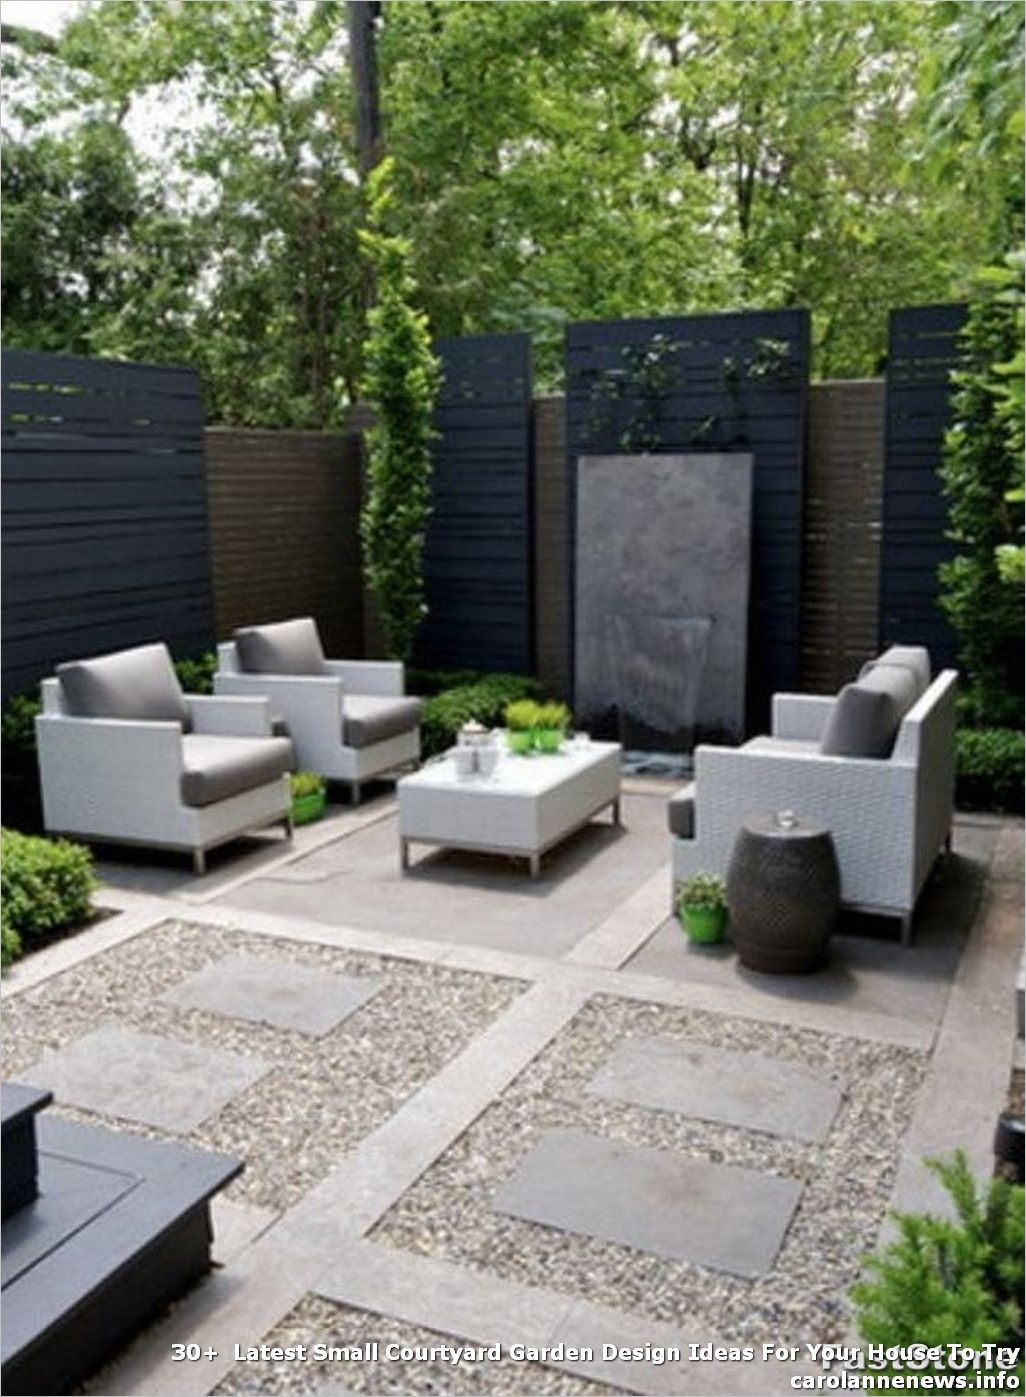 30 Latest Small Courtyard Garden Design Ideas For Your